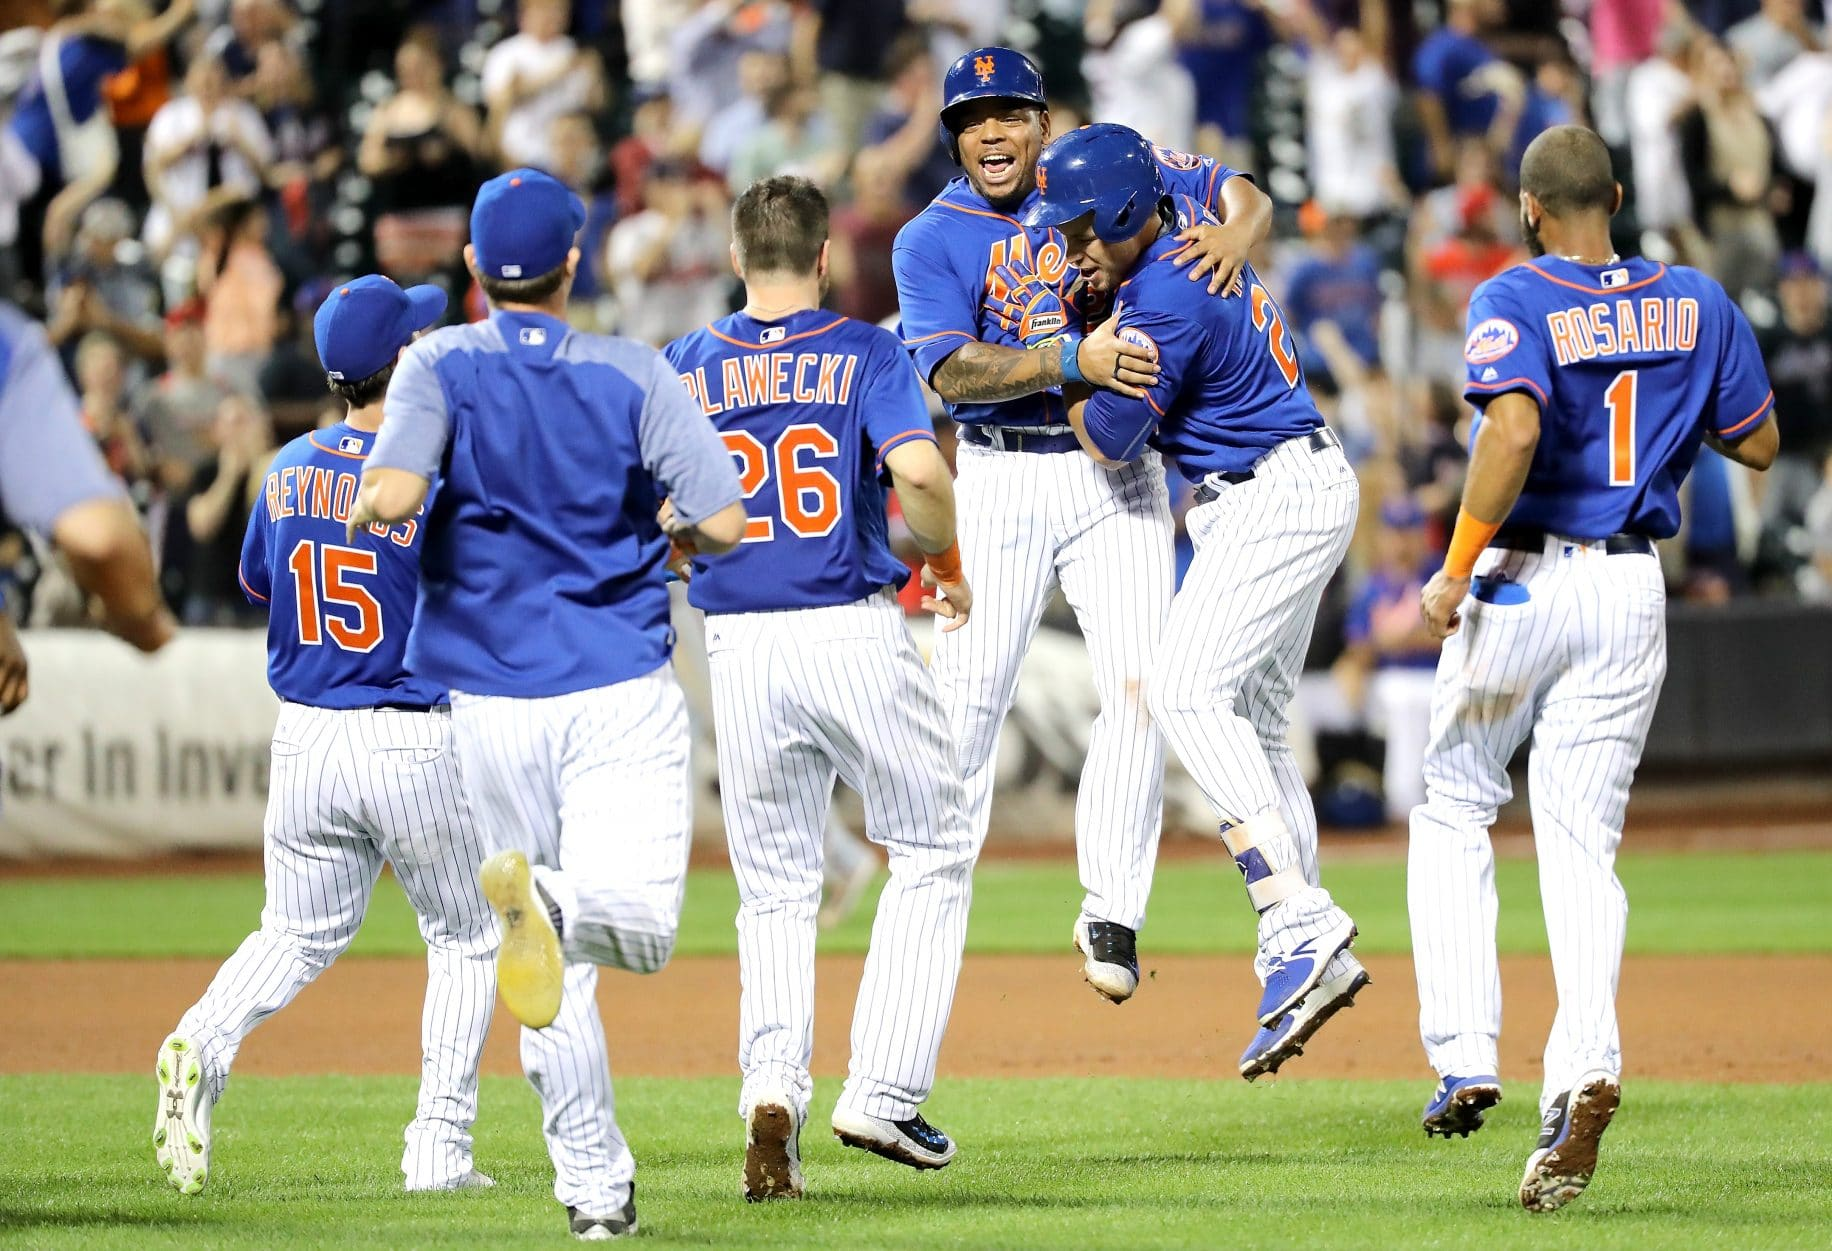 How would your life change if the New York Mets won the World Series?